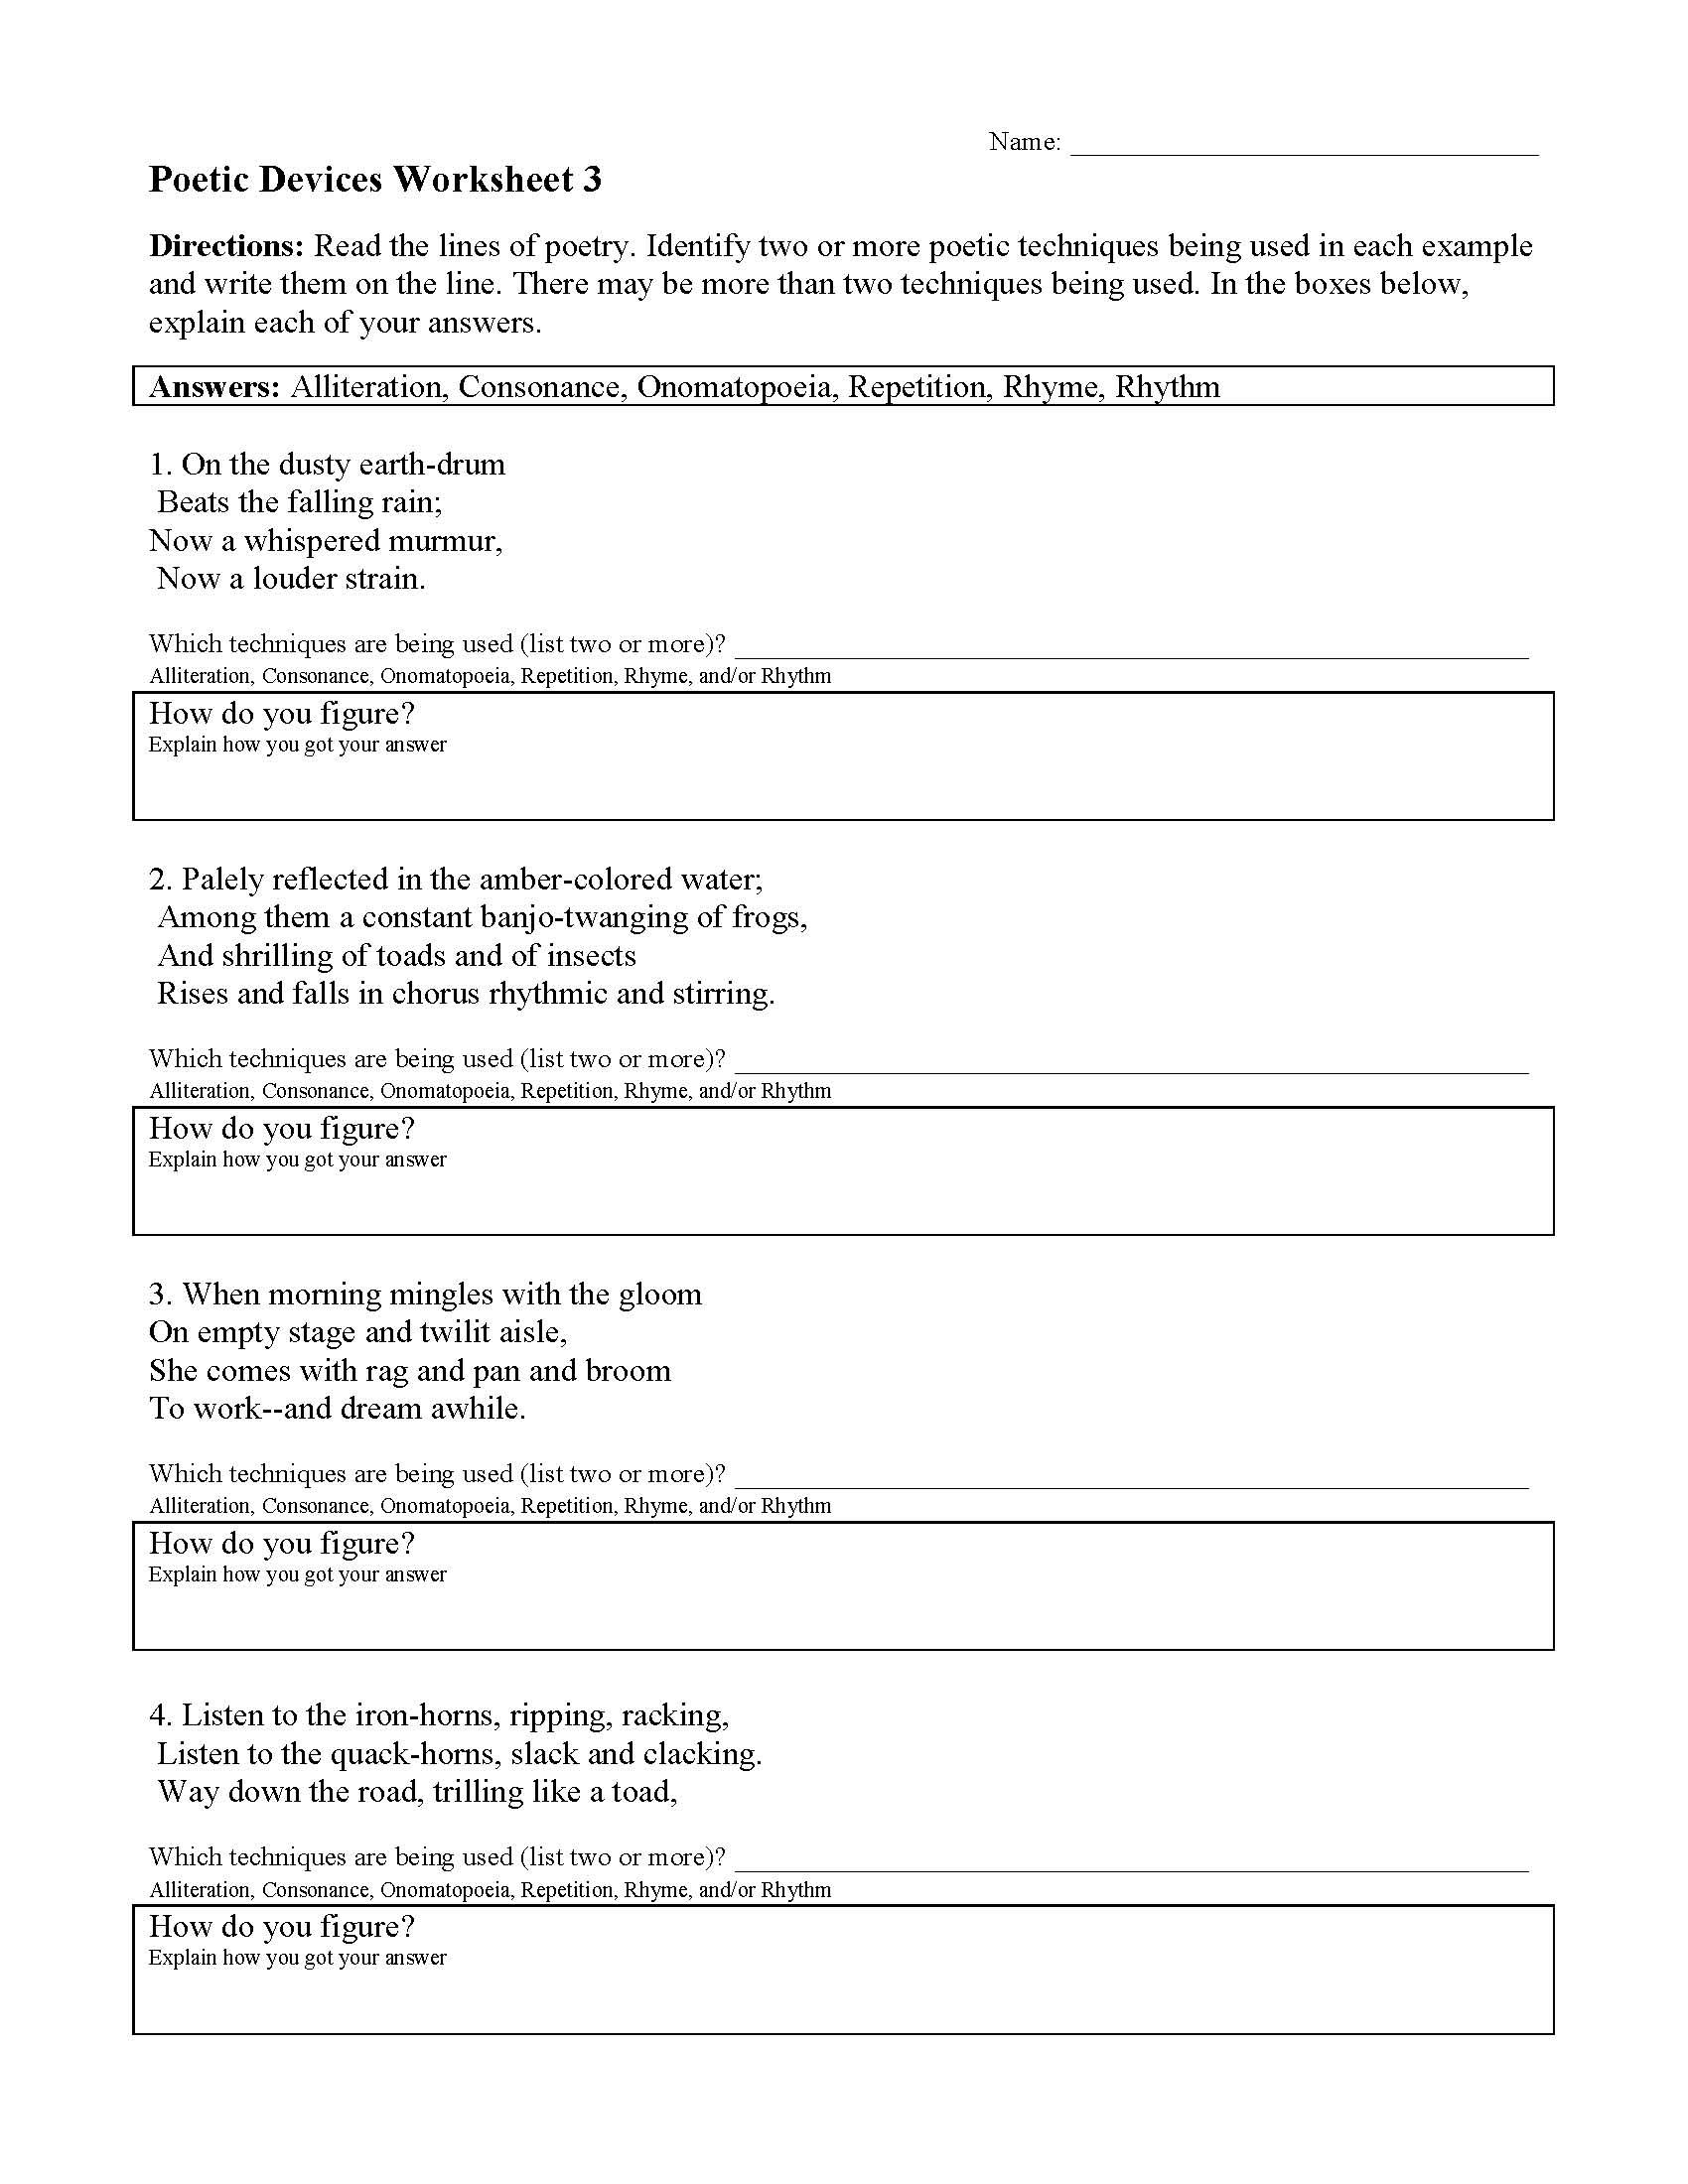 Poetic Devices Worksheet 1 Answers